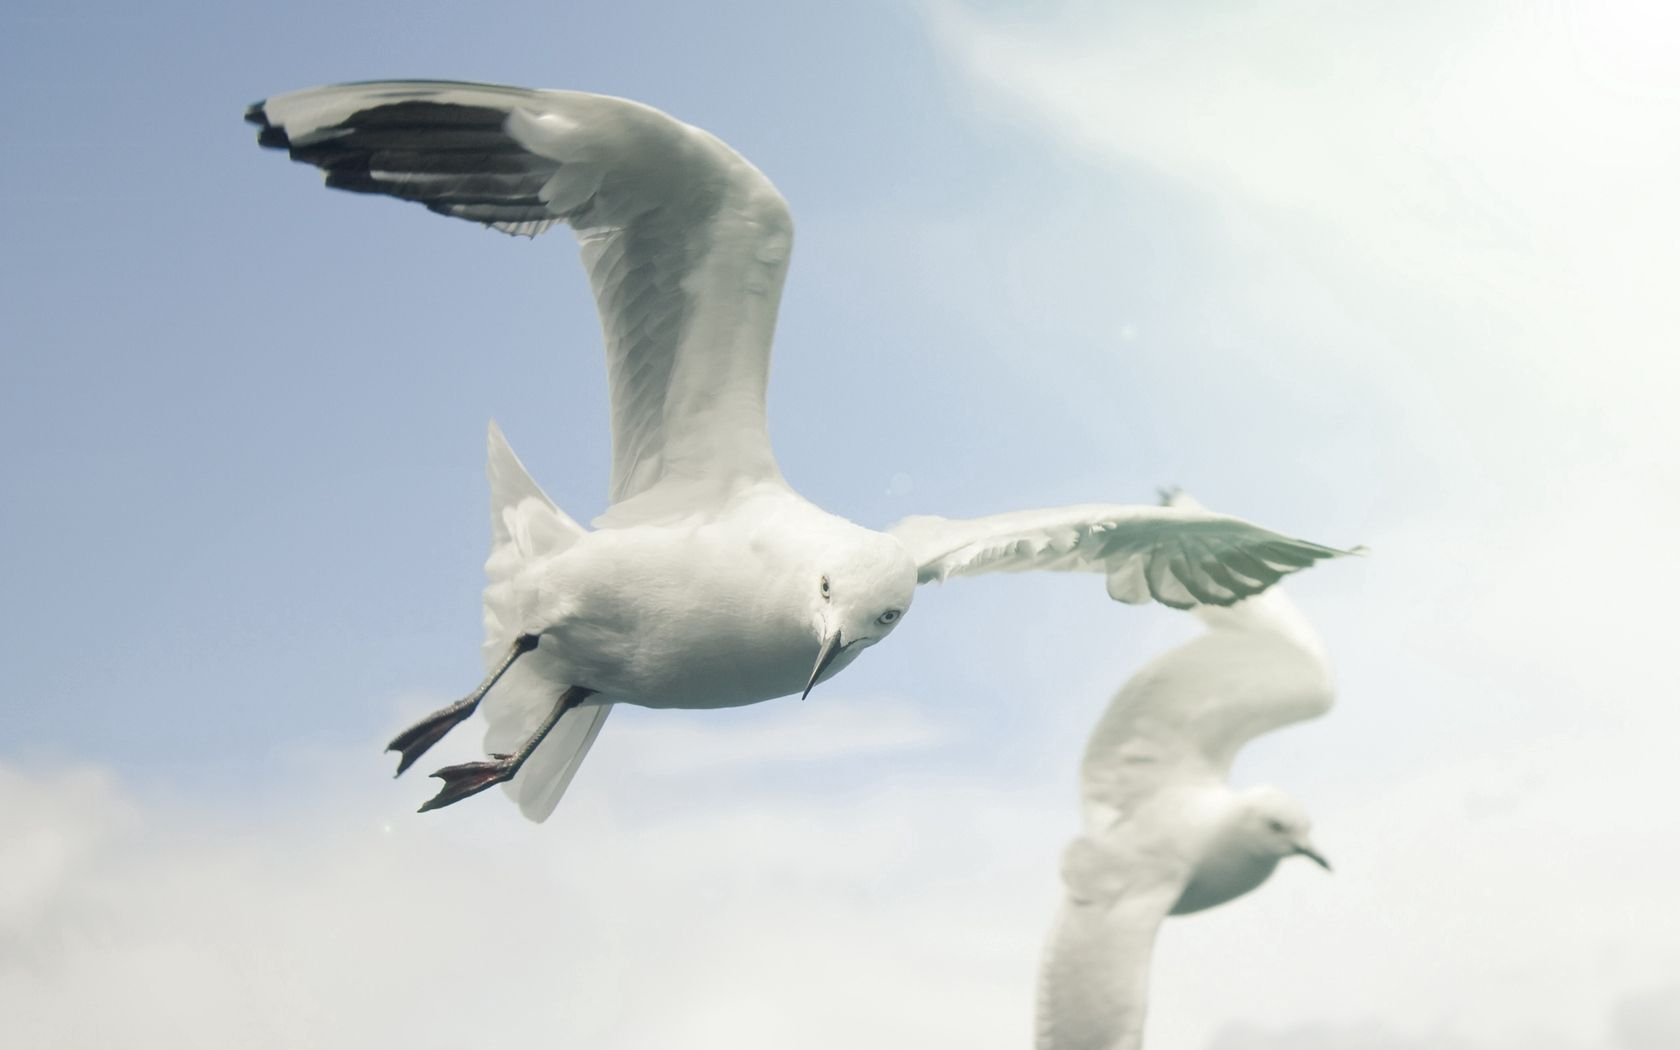 158064 download wallpaper Animals, Sky, Flight, Wings, Sweep, Wave, Birds, Seagulls screensavers and pictures for free